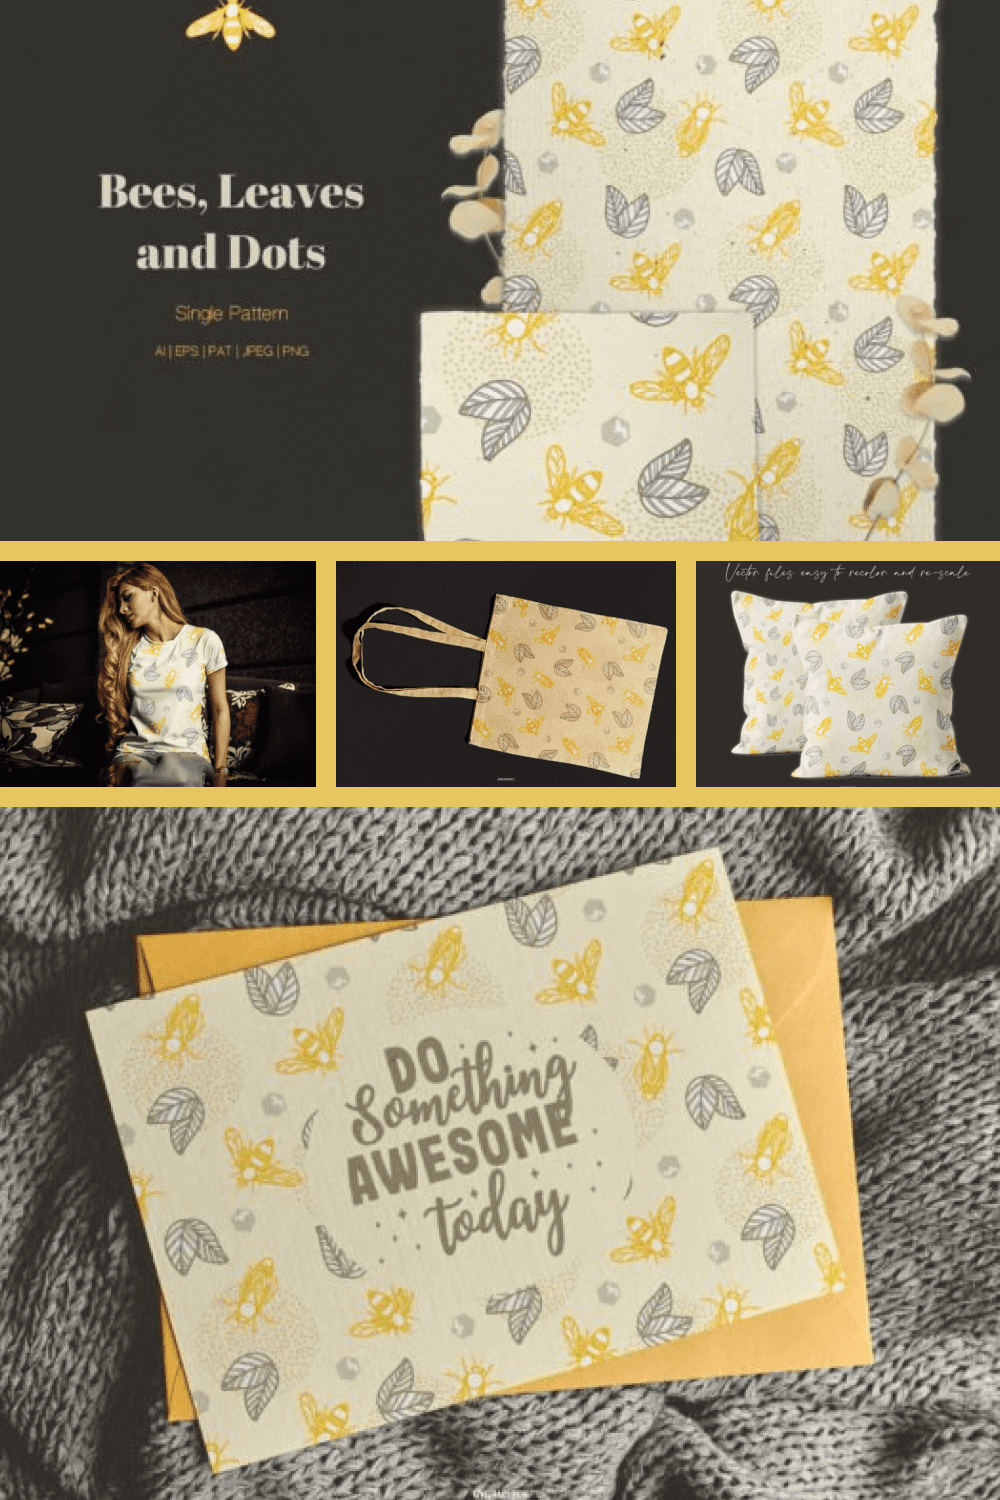 Bee Pattern with Leaves and Dots Elements - MasterBundles - Pinterest Collage Image.